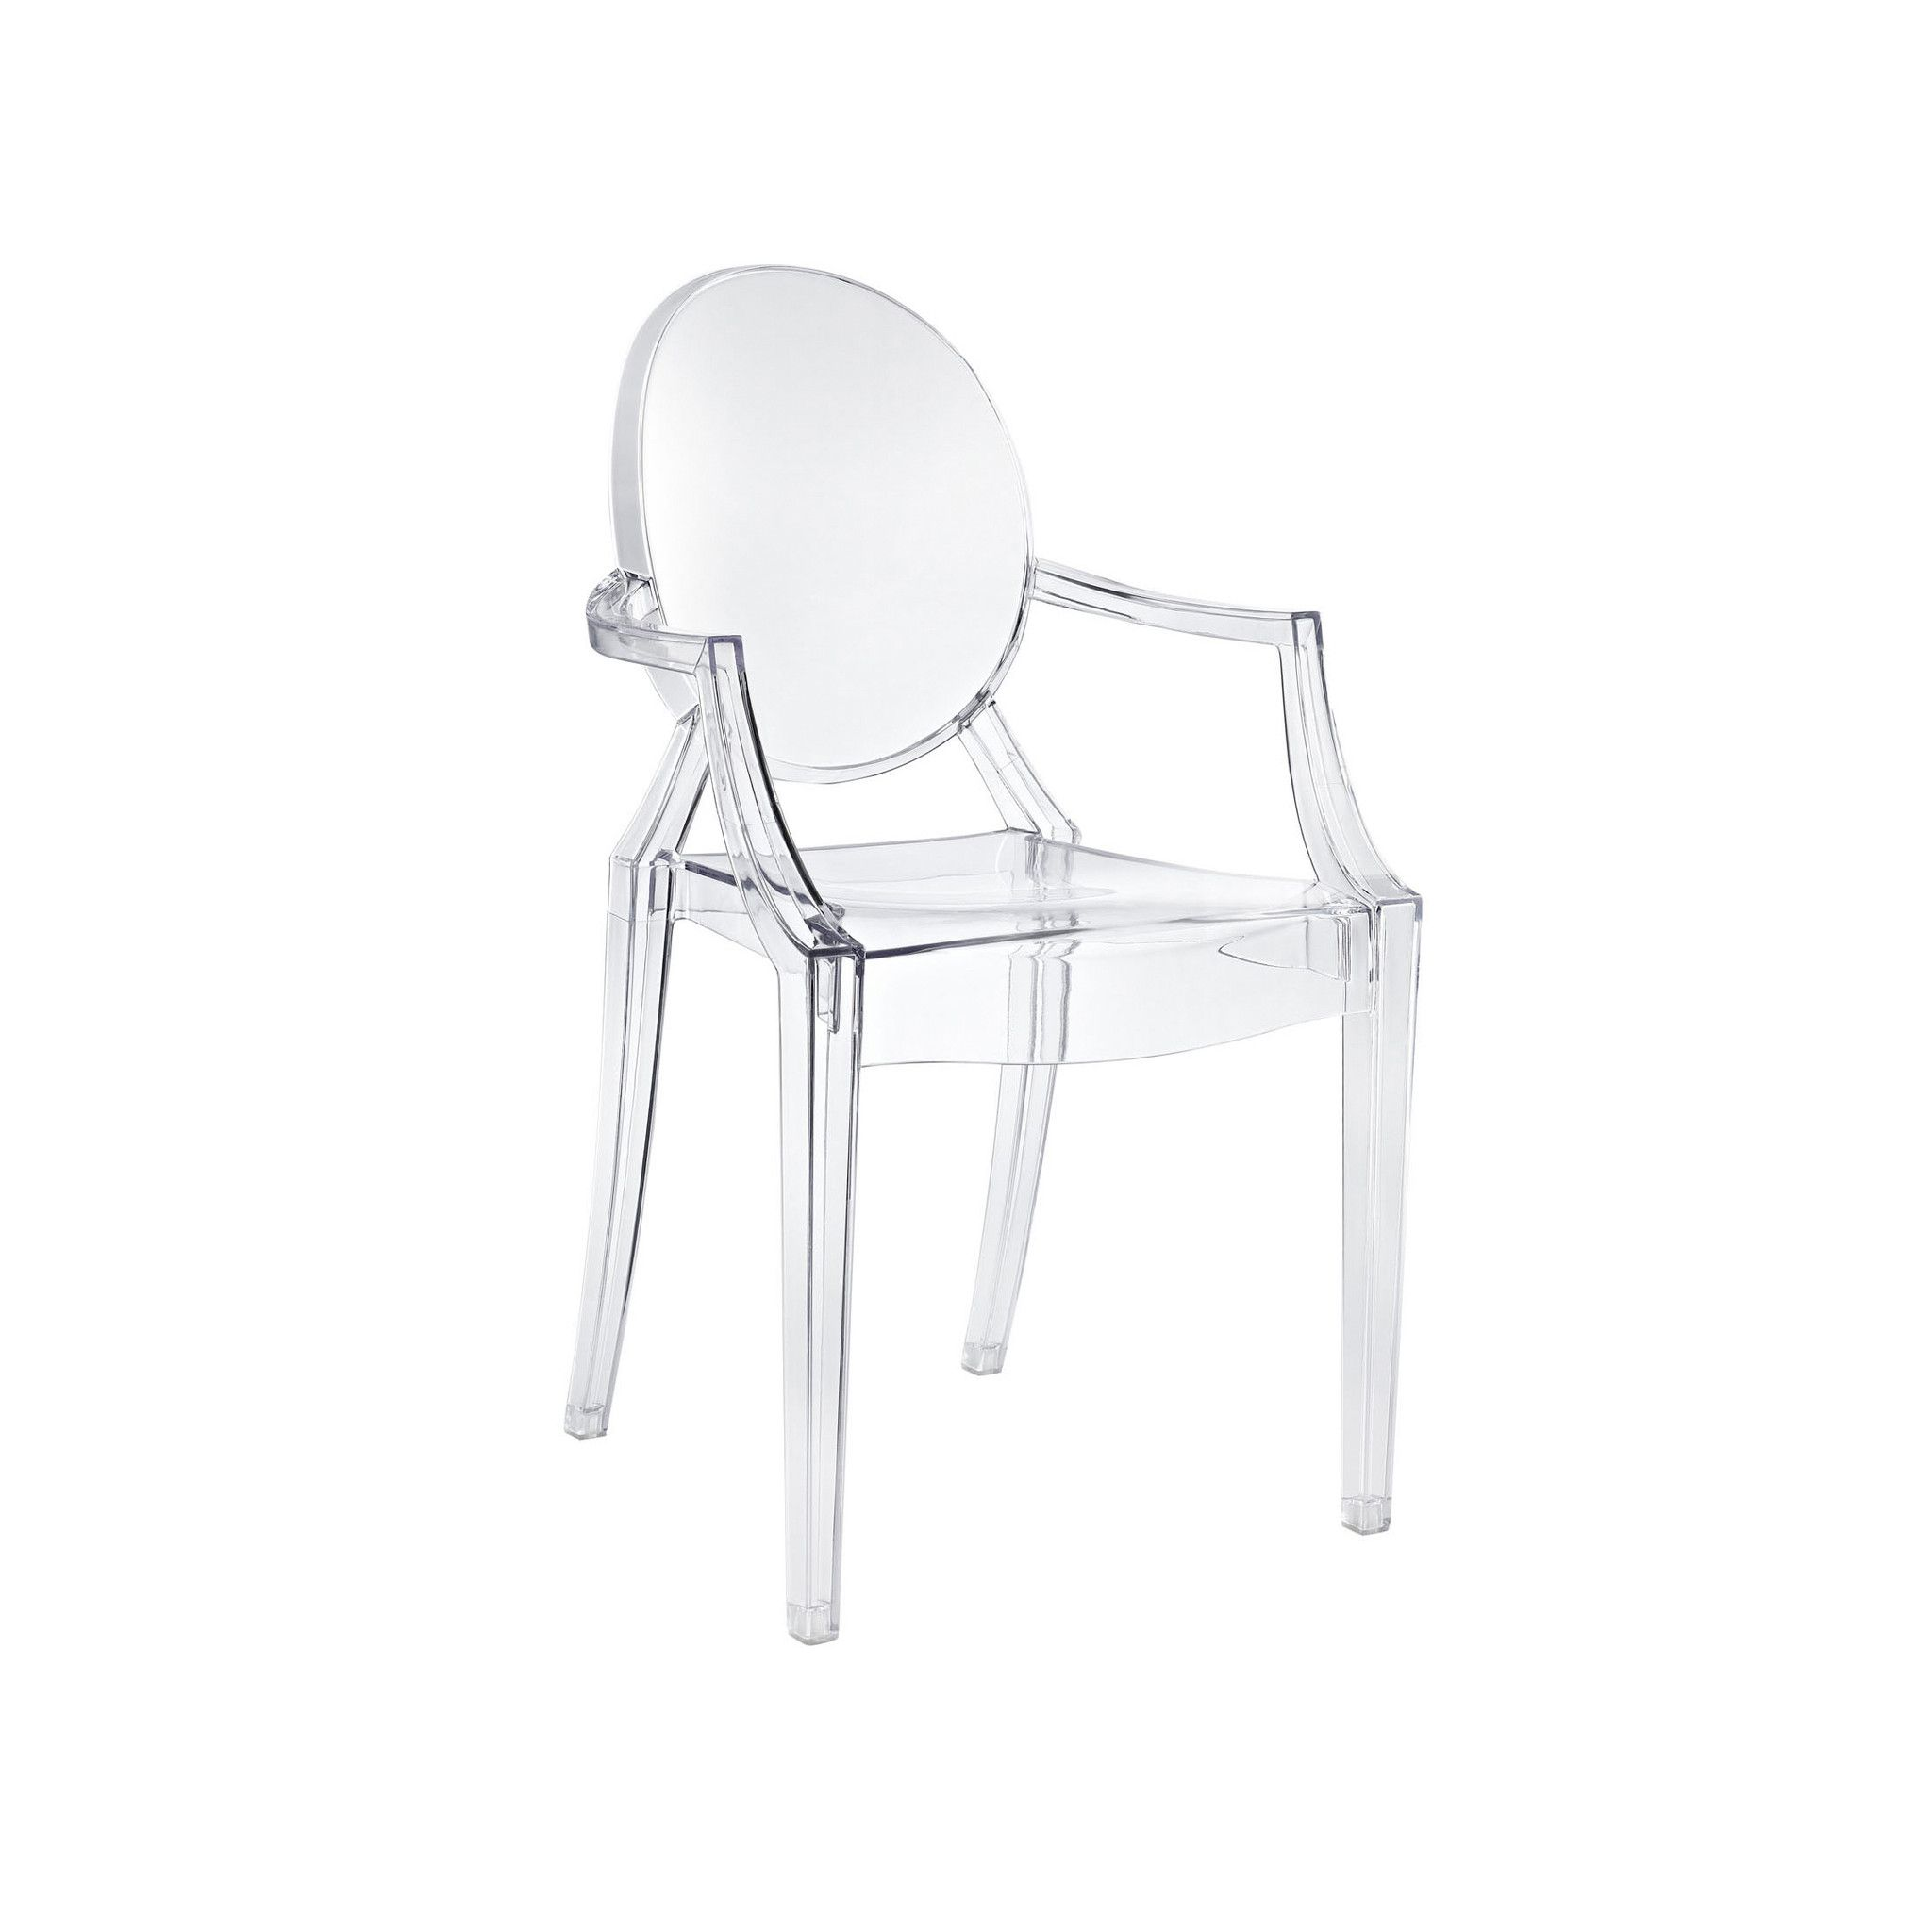 Polycarbonate Crystal Clear Ghost Chair (Set of 4)